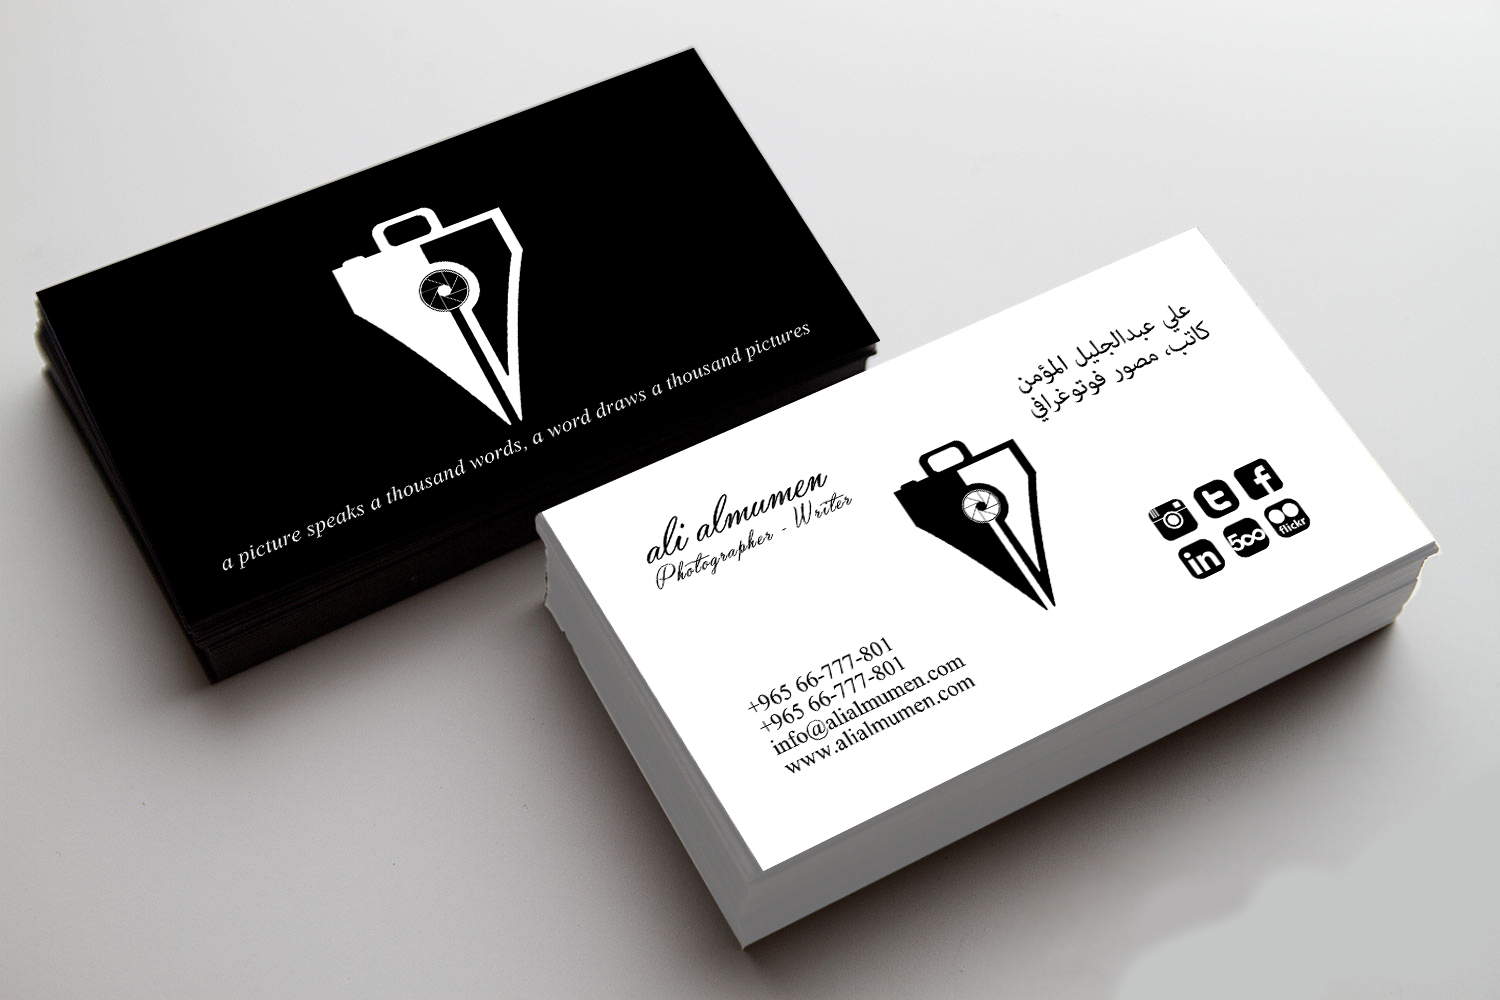 Print business cards kuwait gallery card design and card template business cards printing kuwait choice image card design and card elegant playful business business card design reheart